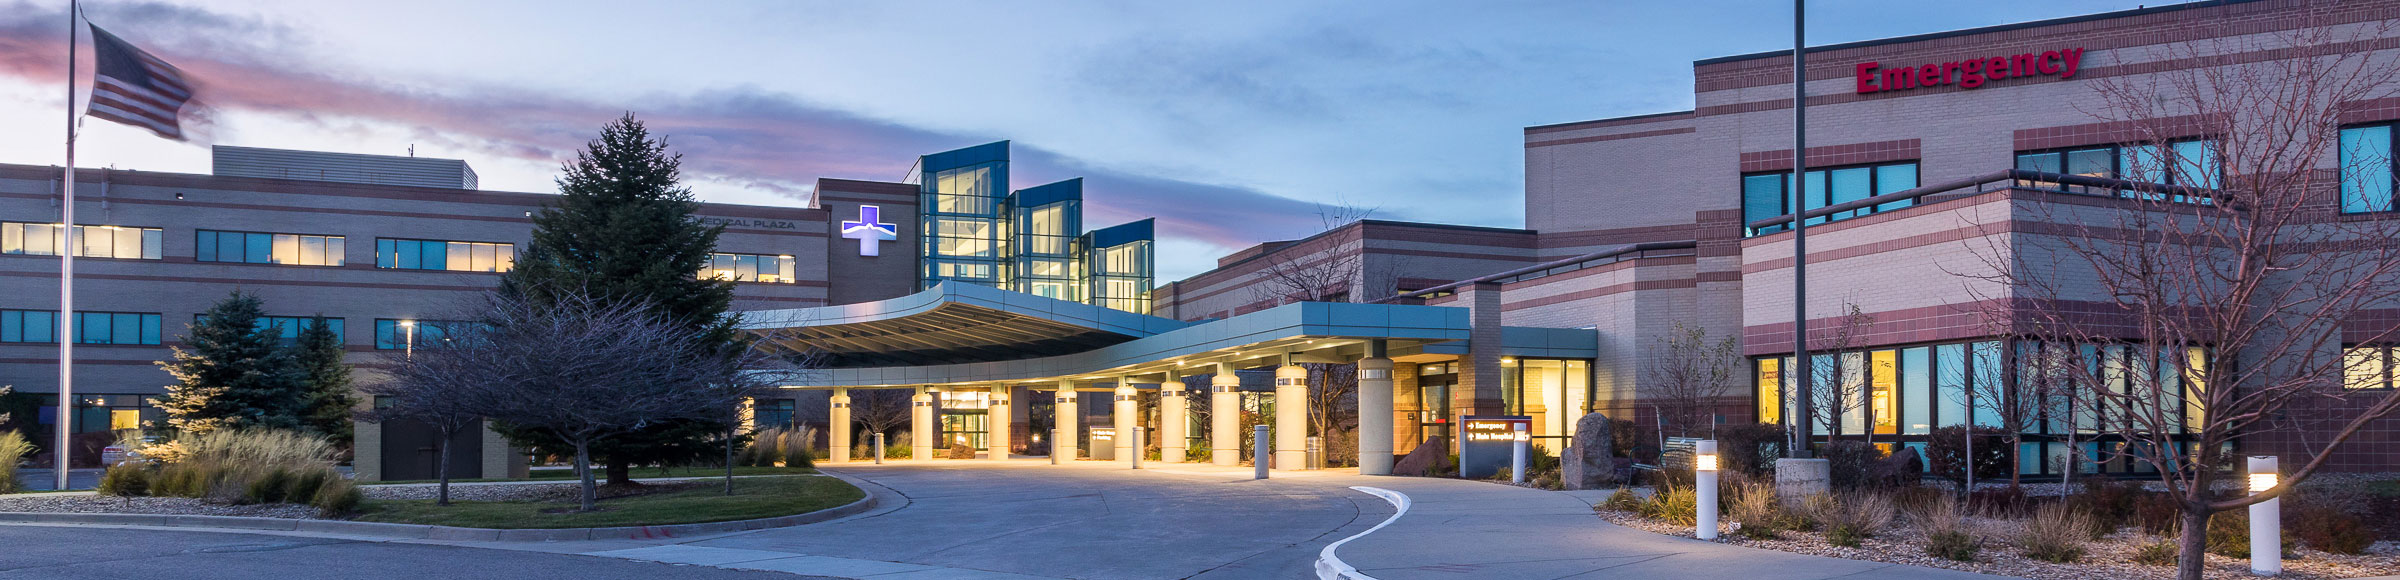 Avista Adventist Hospital building